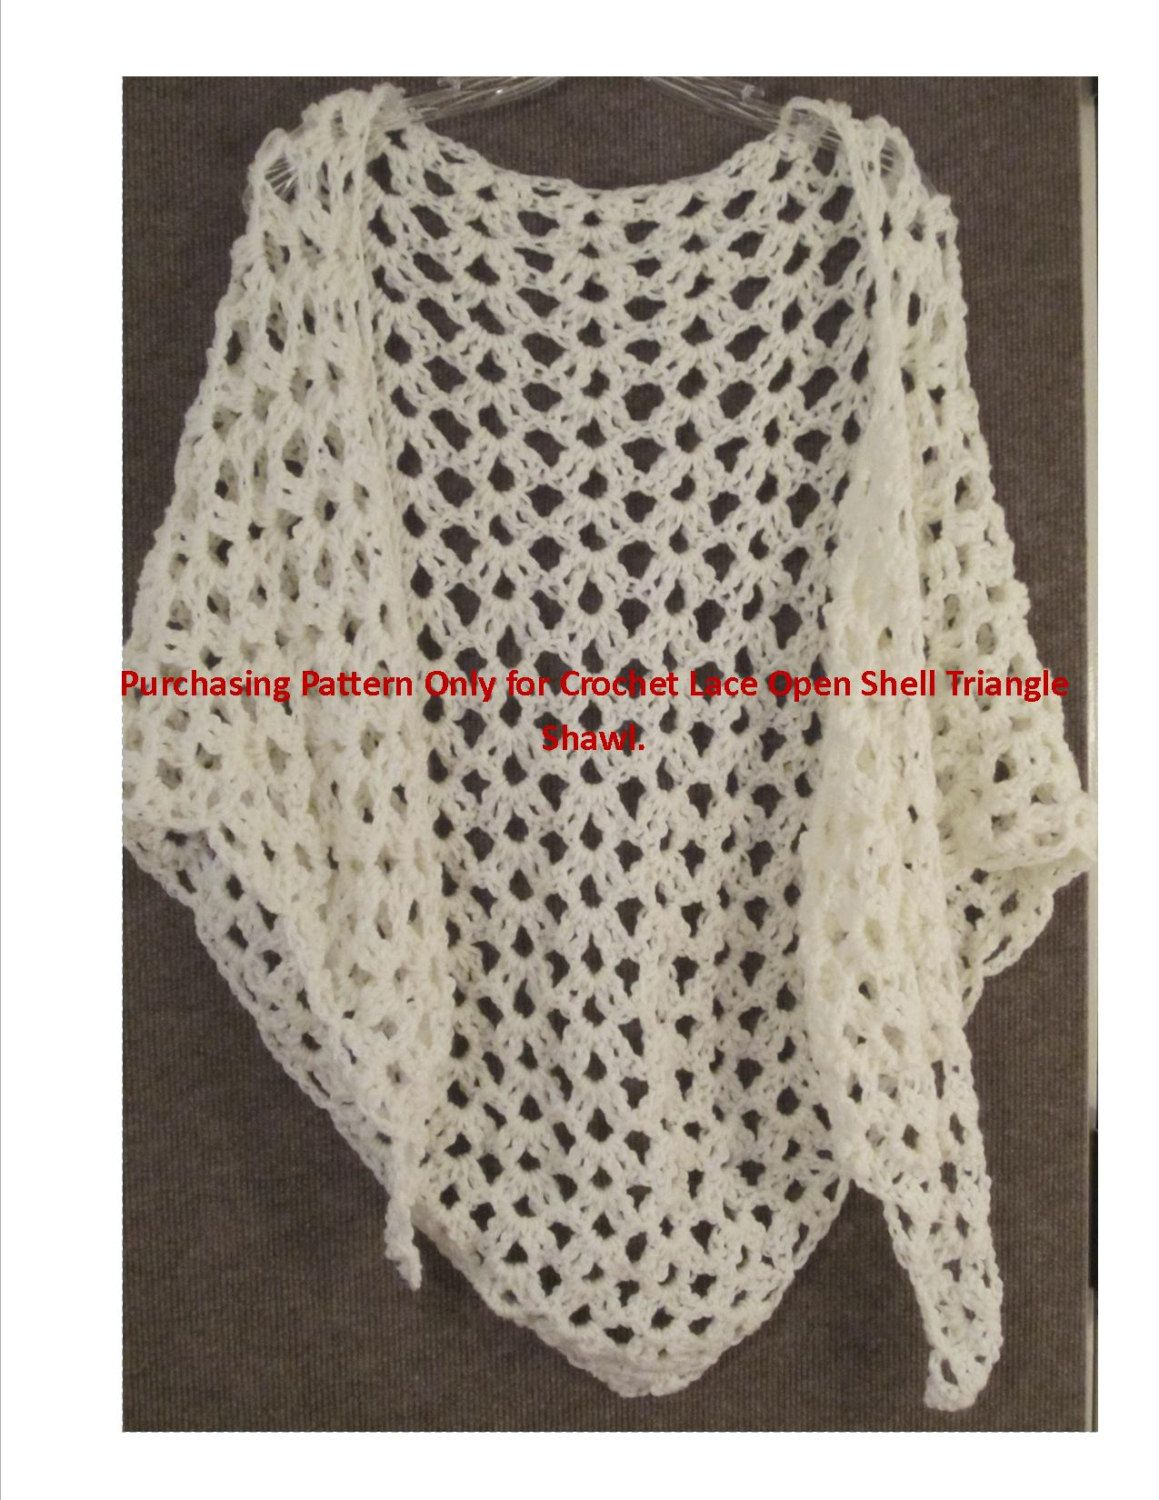 Pattern only crochet triangle lace shell stitch shawl wrap 400 pattern only crochet triangle lace shell stitch shawl wrap 400 via etsy bankloansurffo Image collections